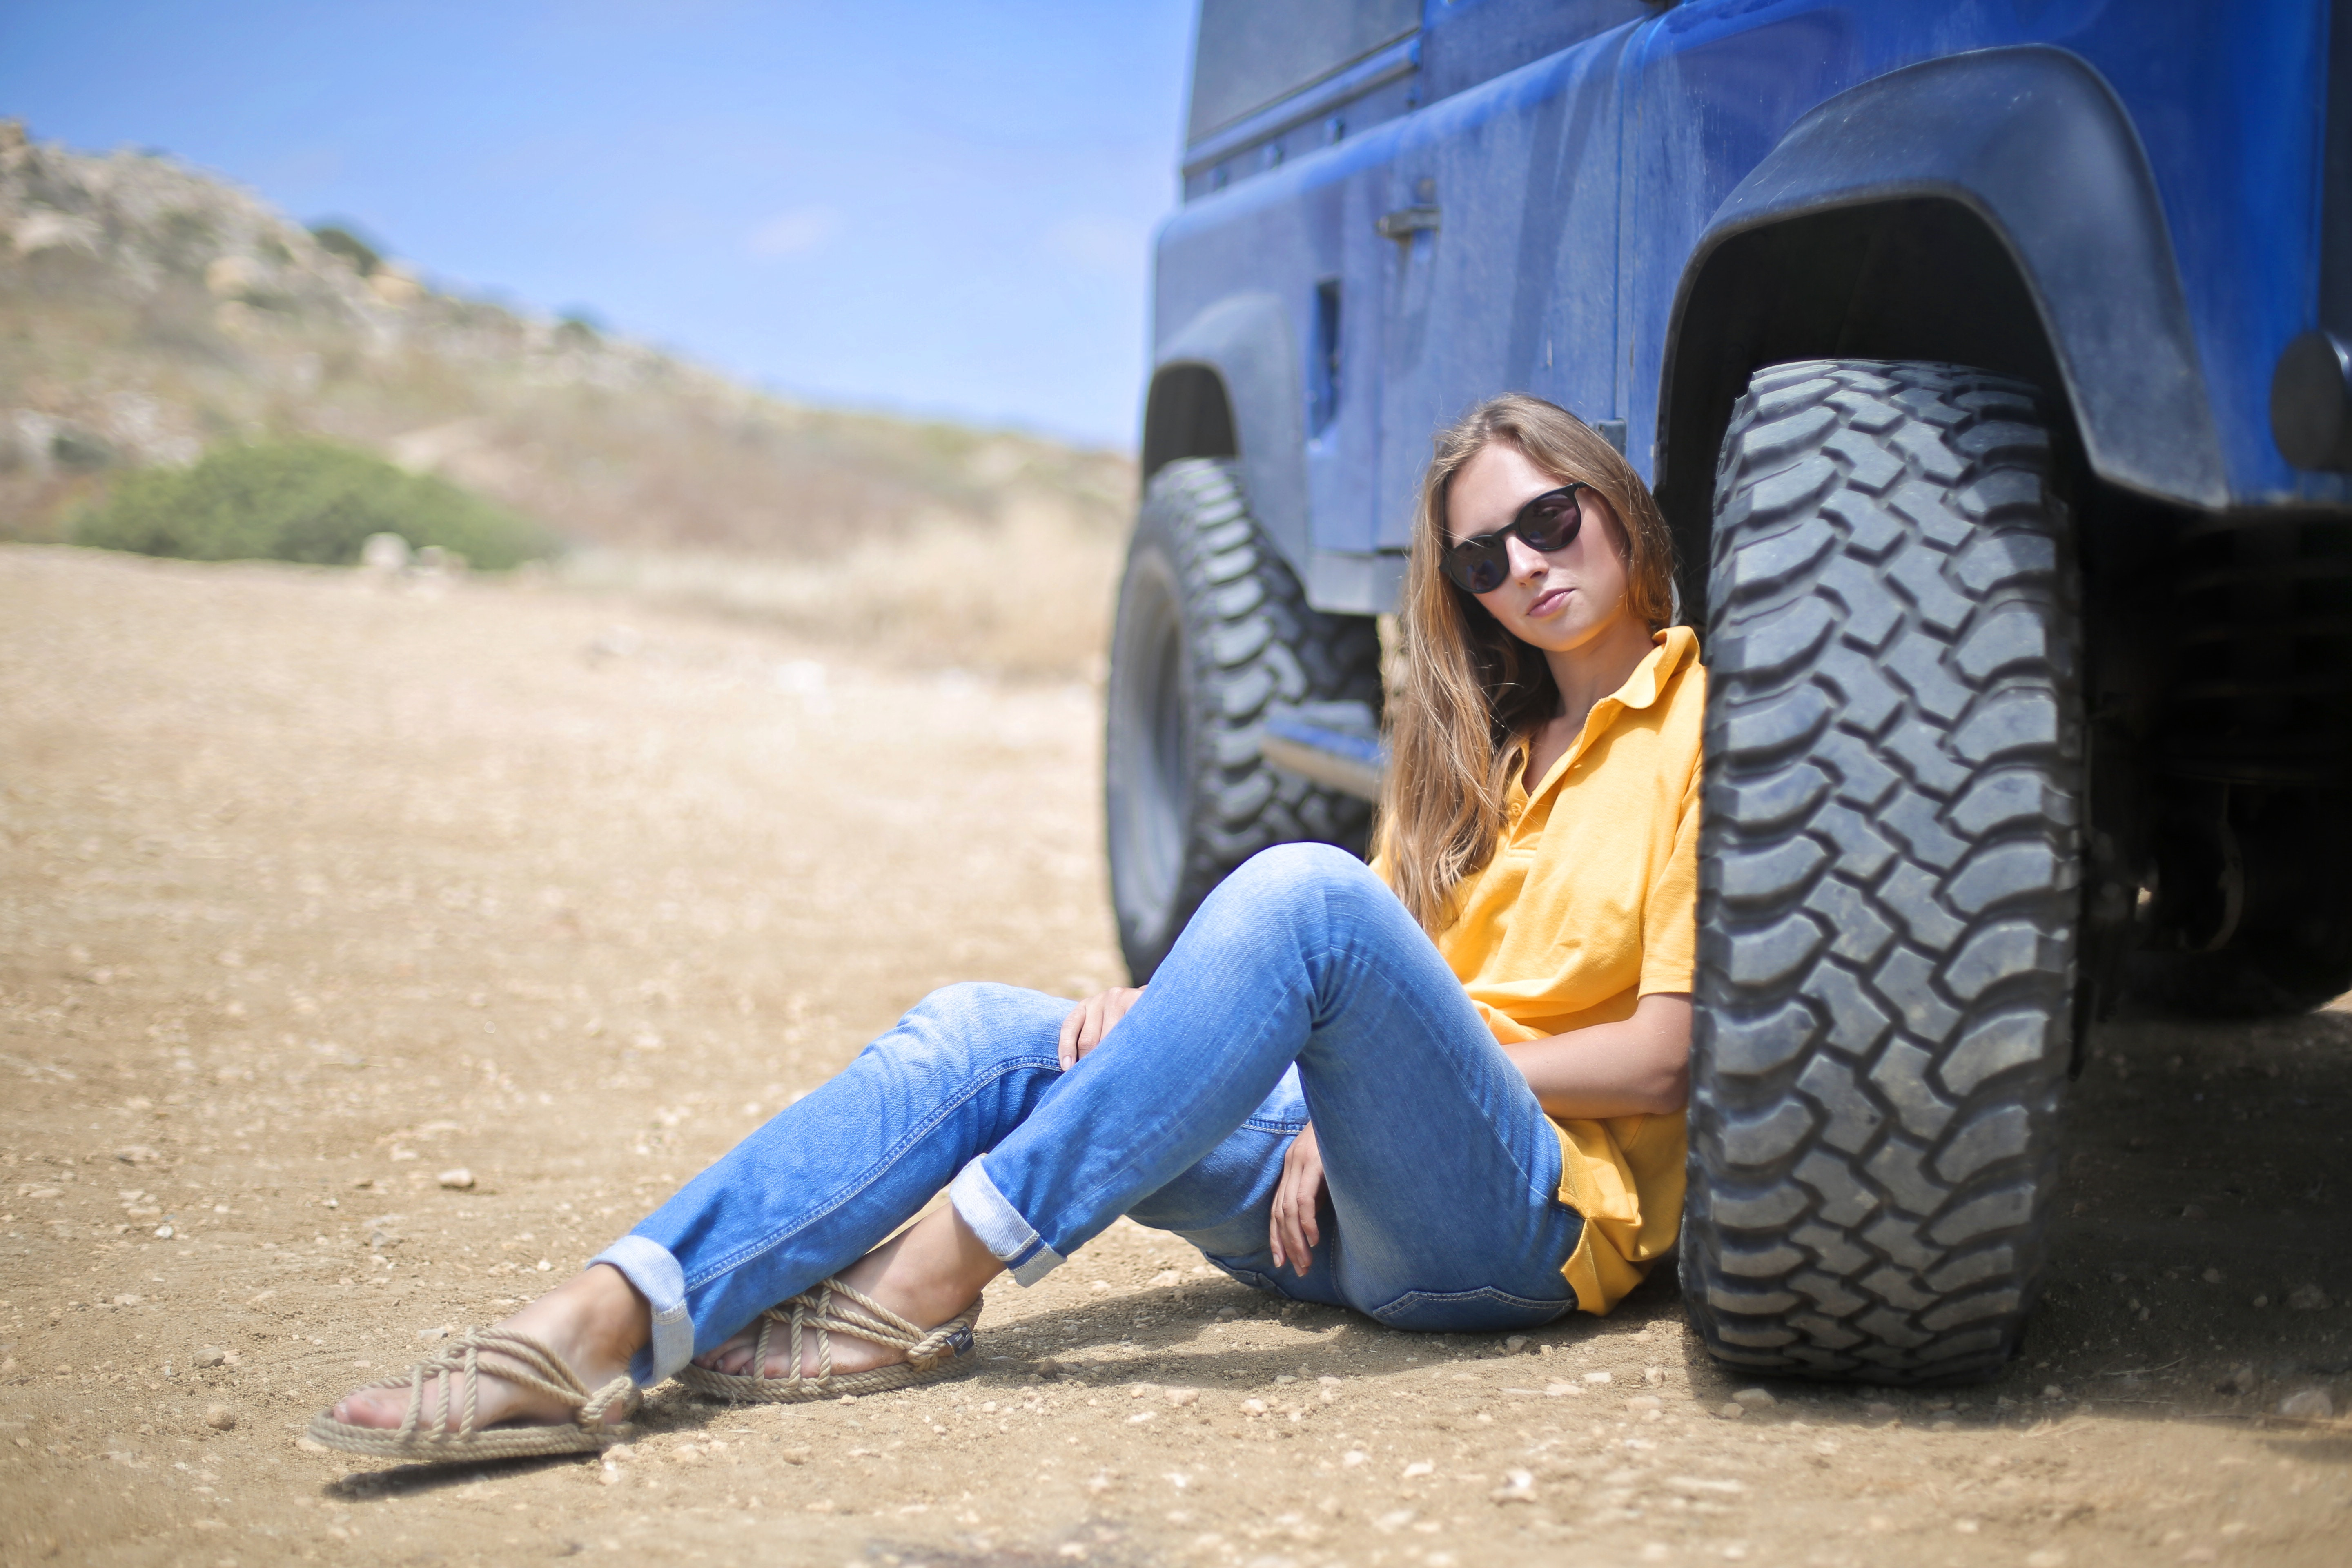 Woman in Yellow Polo Shirt Sitting on Ground Leaning on Blue Vehicle at Daytime, Adult, Offroad, Wheel, Wear, HQ Photo